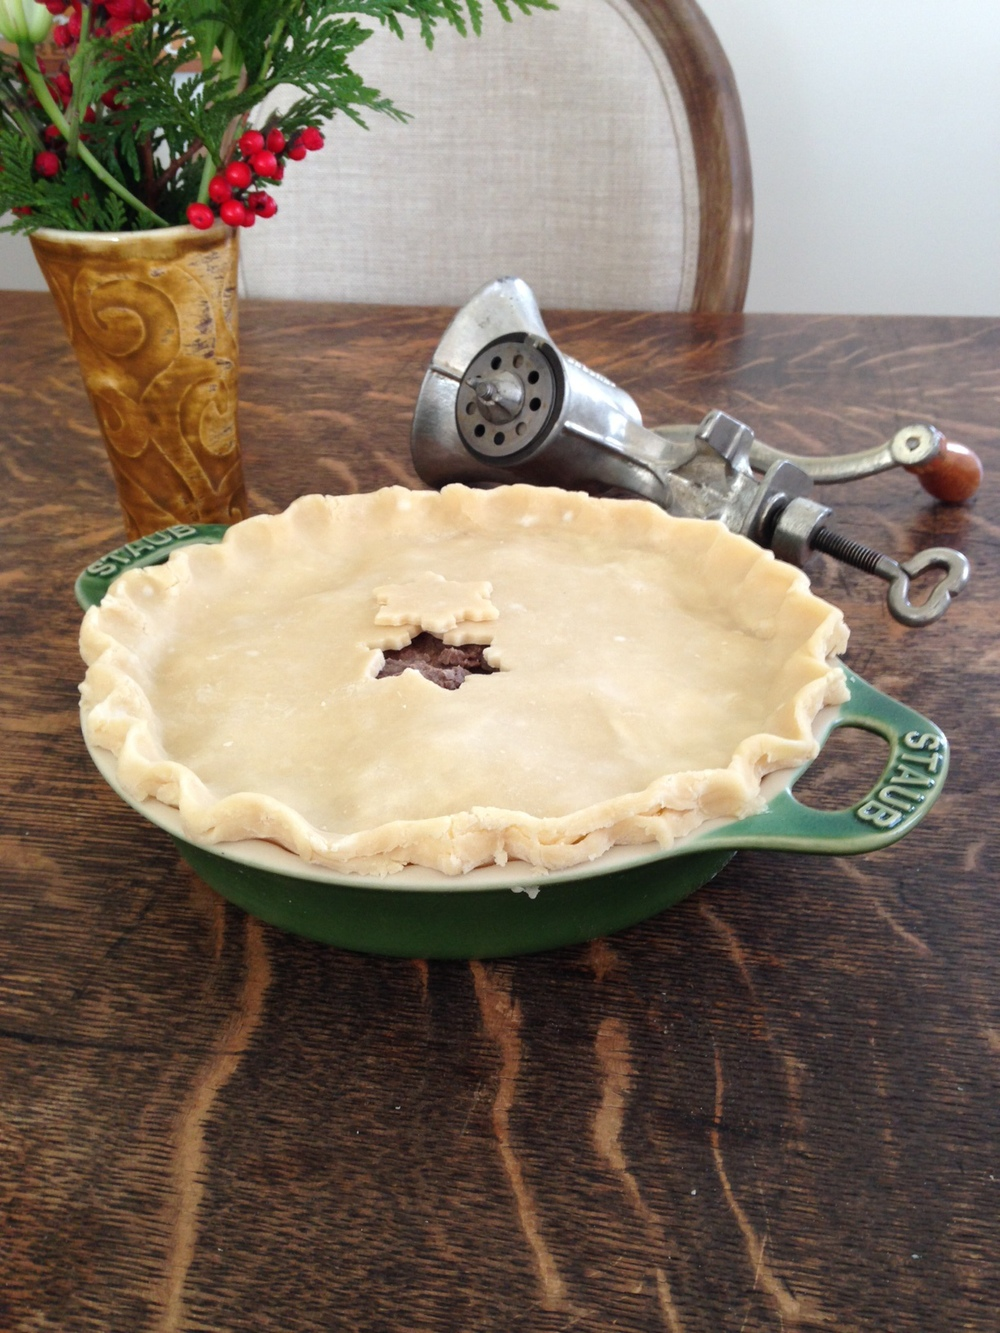 Tourtière, pre-baked and the antique meat grinder.